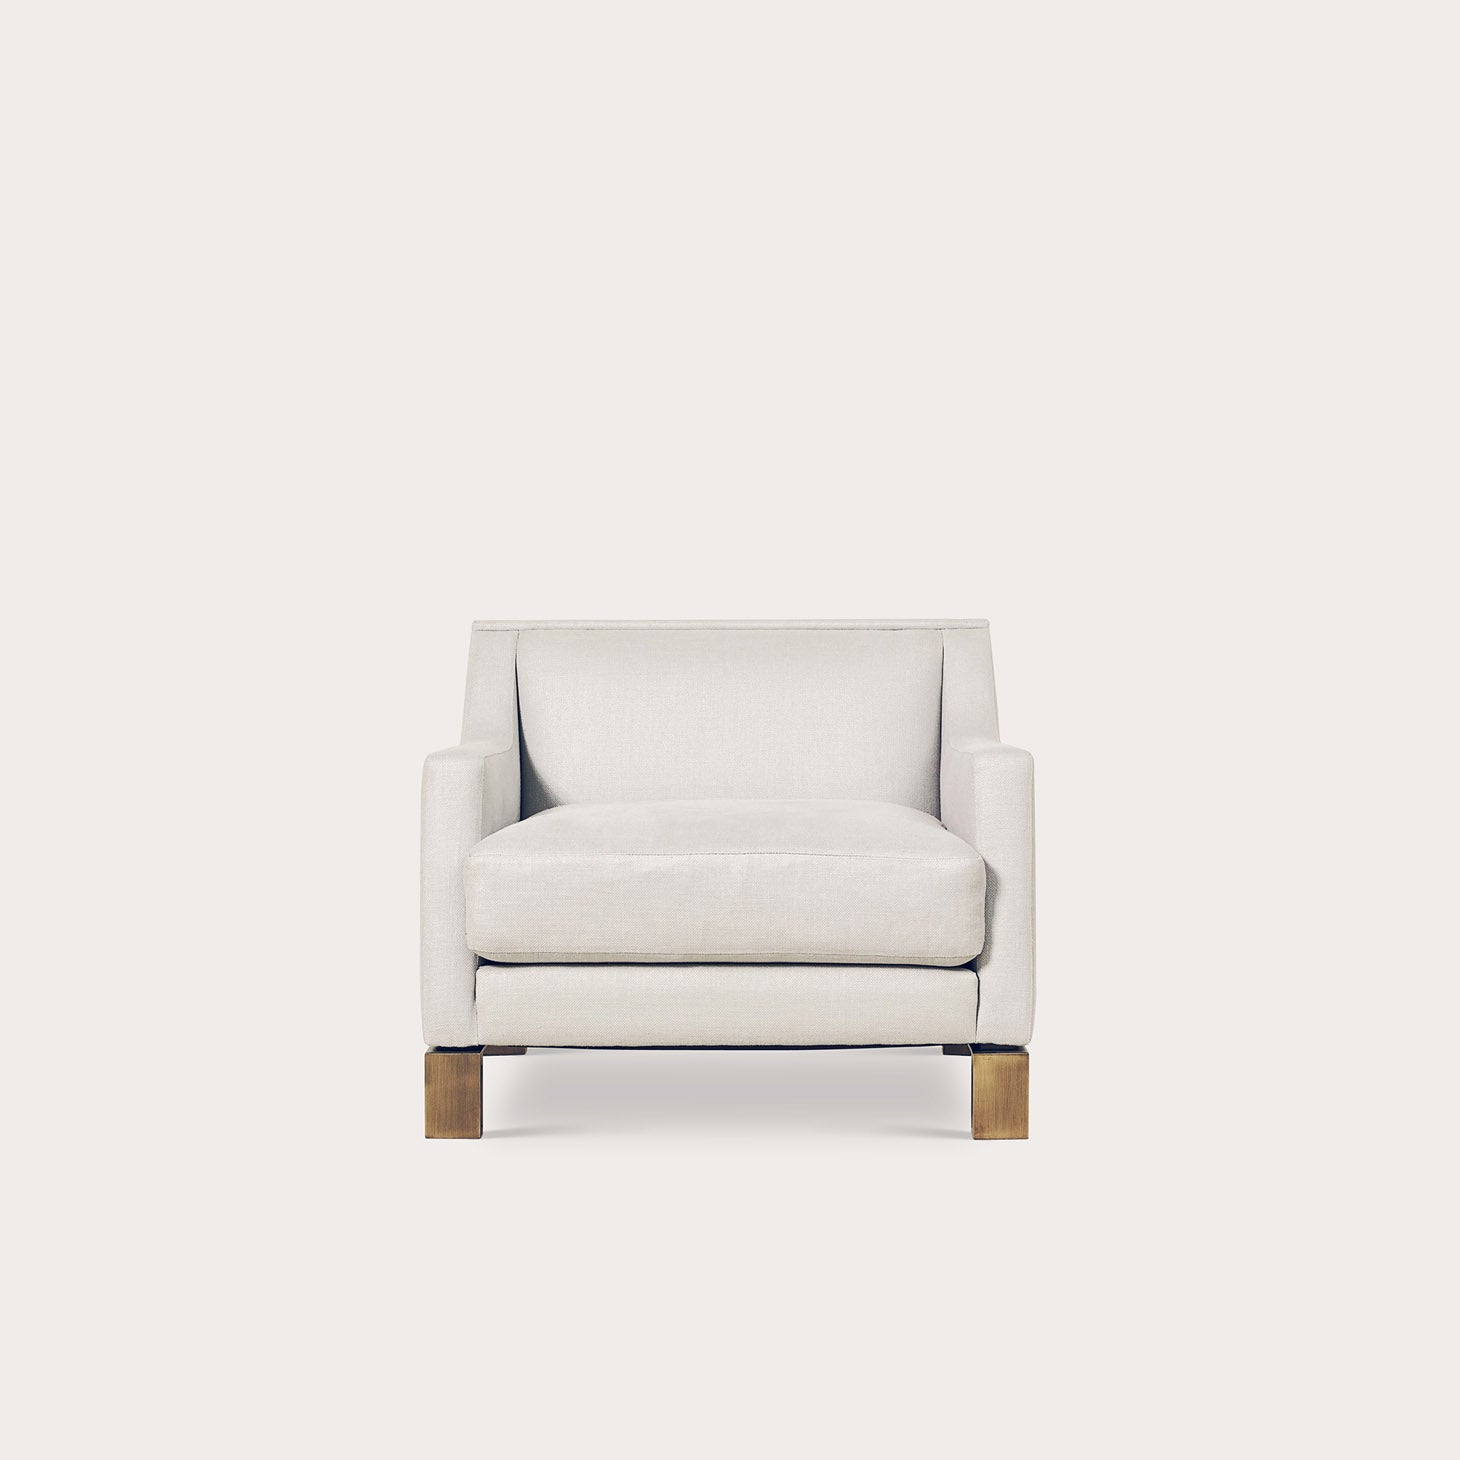 Beacon Hill Road Seating Yabu Pushelberg Designer Furniture Sku: 990-240-10048